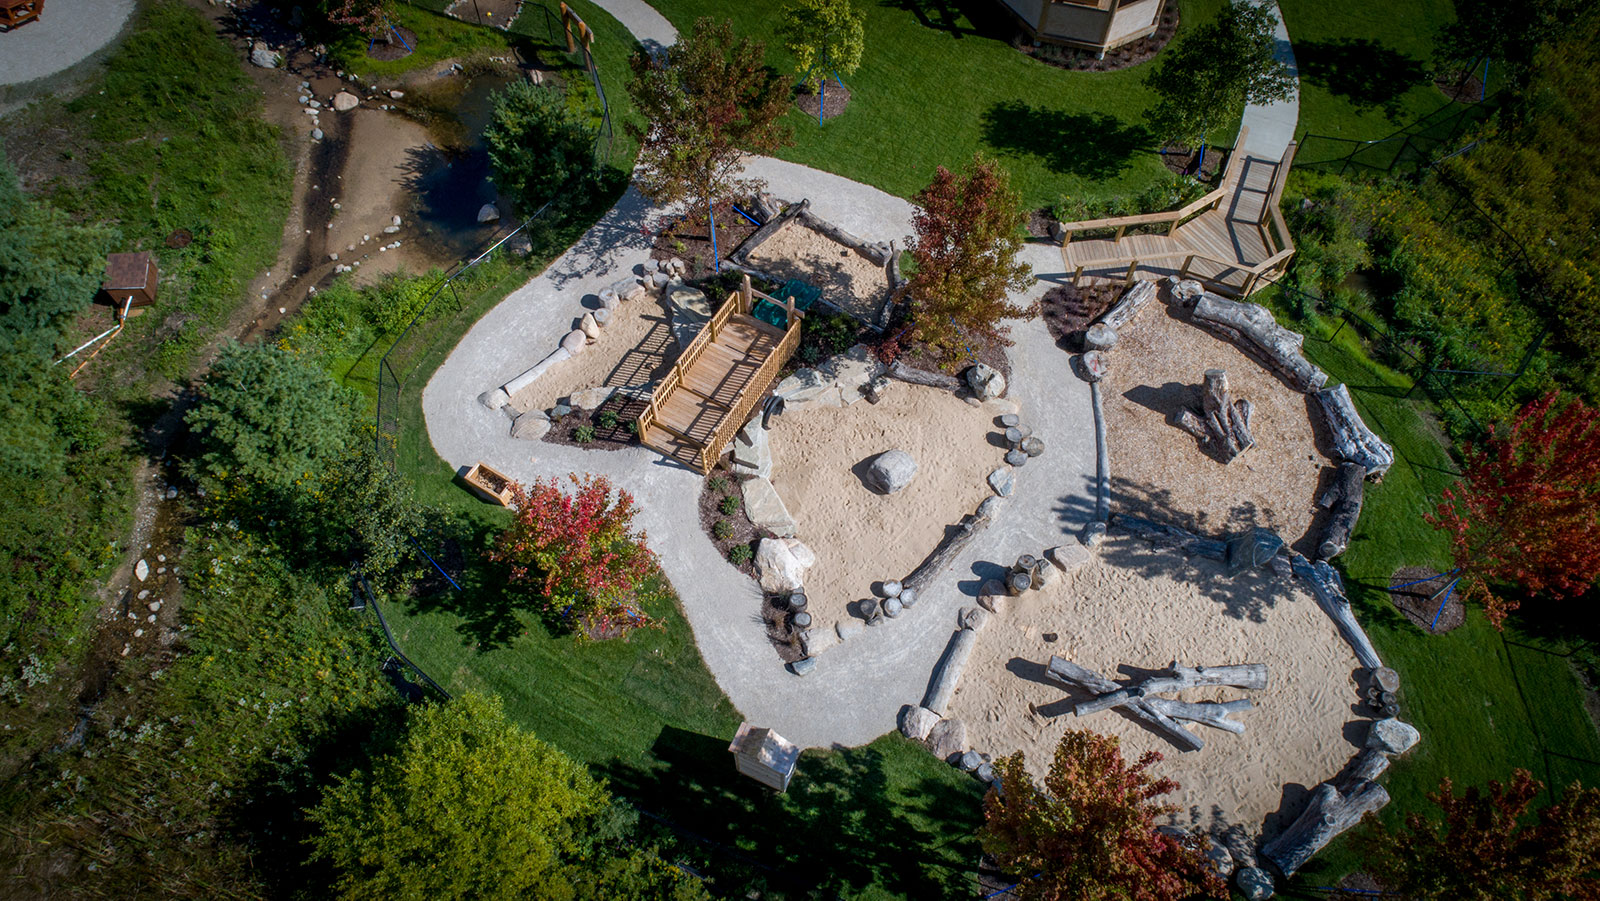 Aerial view of natural play area